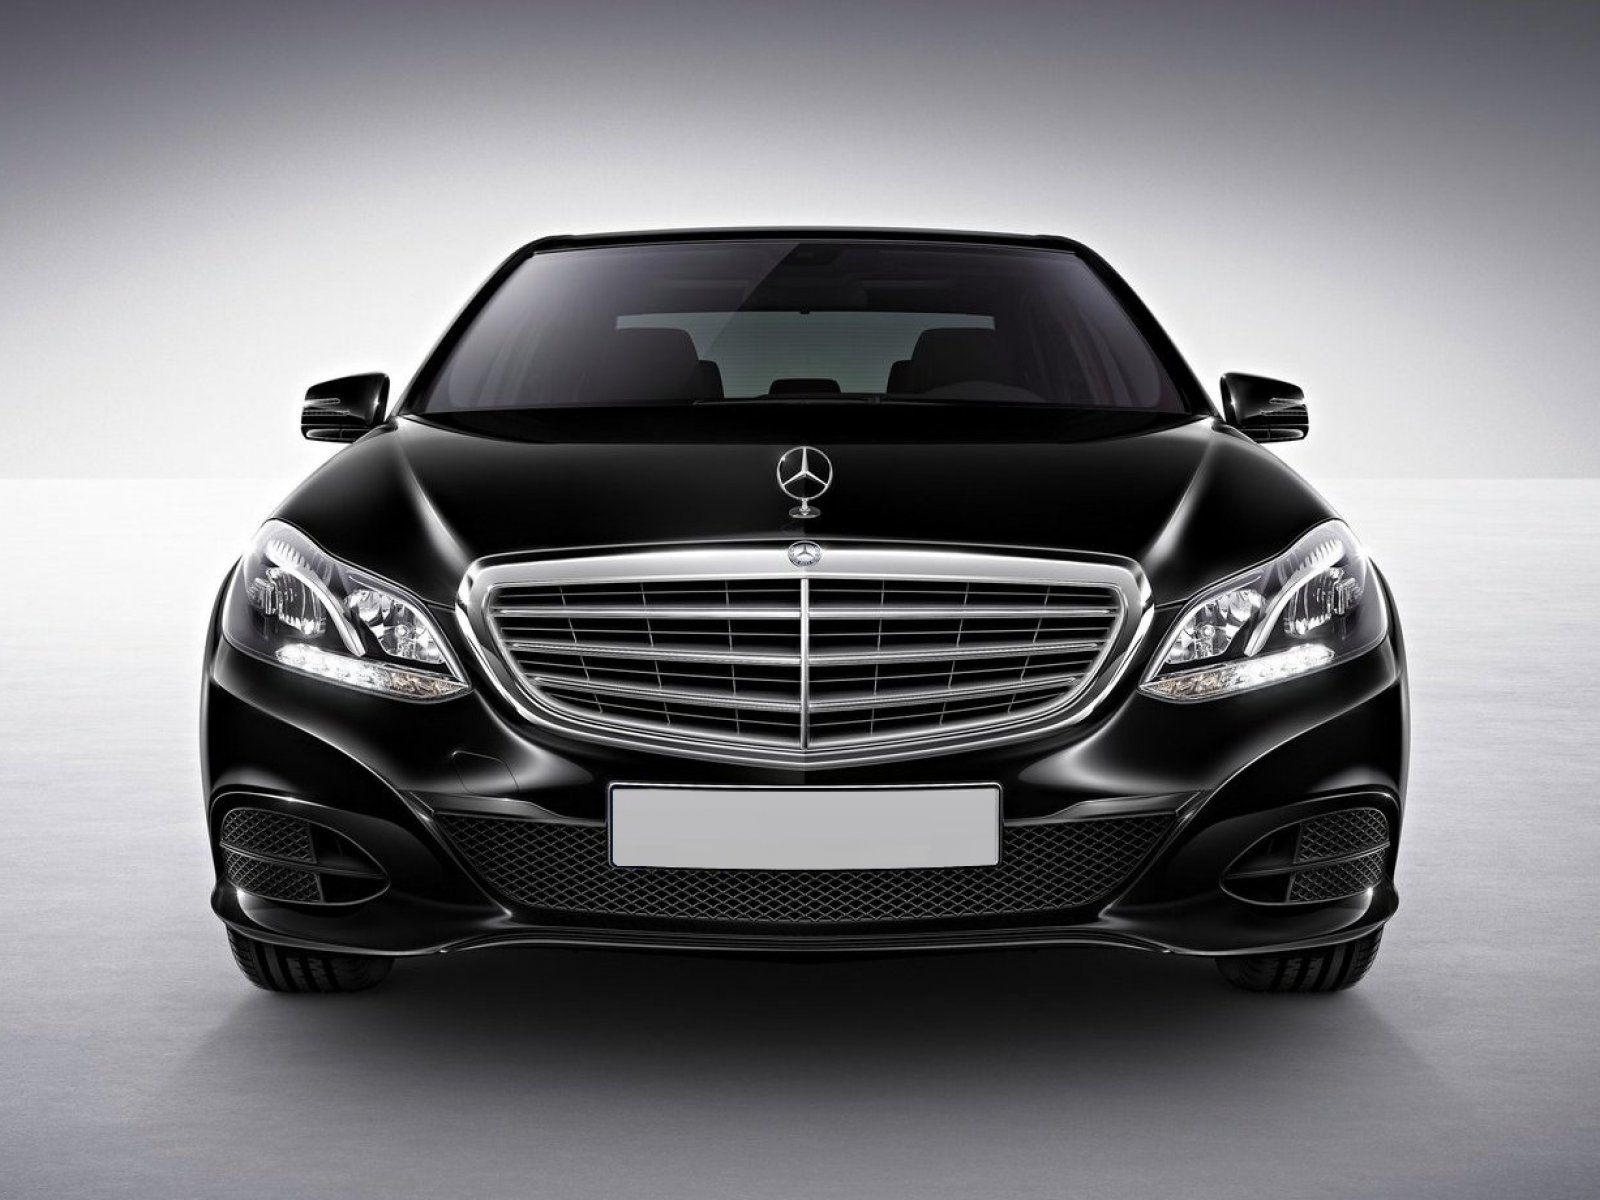 mercedes benz e class 2017 price in pakistan pictures and reviews pakwheels. Black Bedroom Furniture Sets. Home Design Ideas